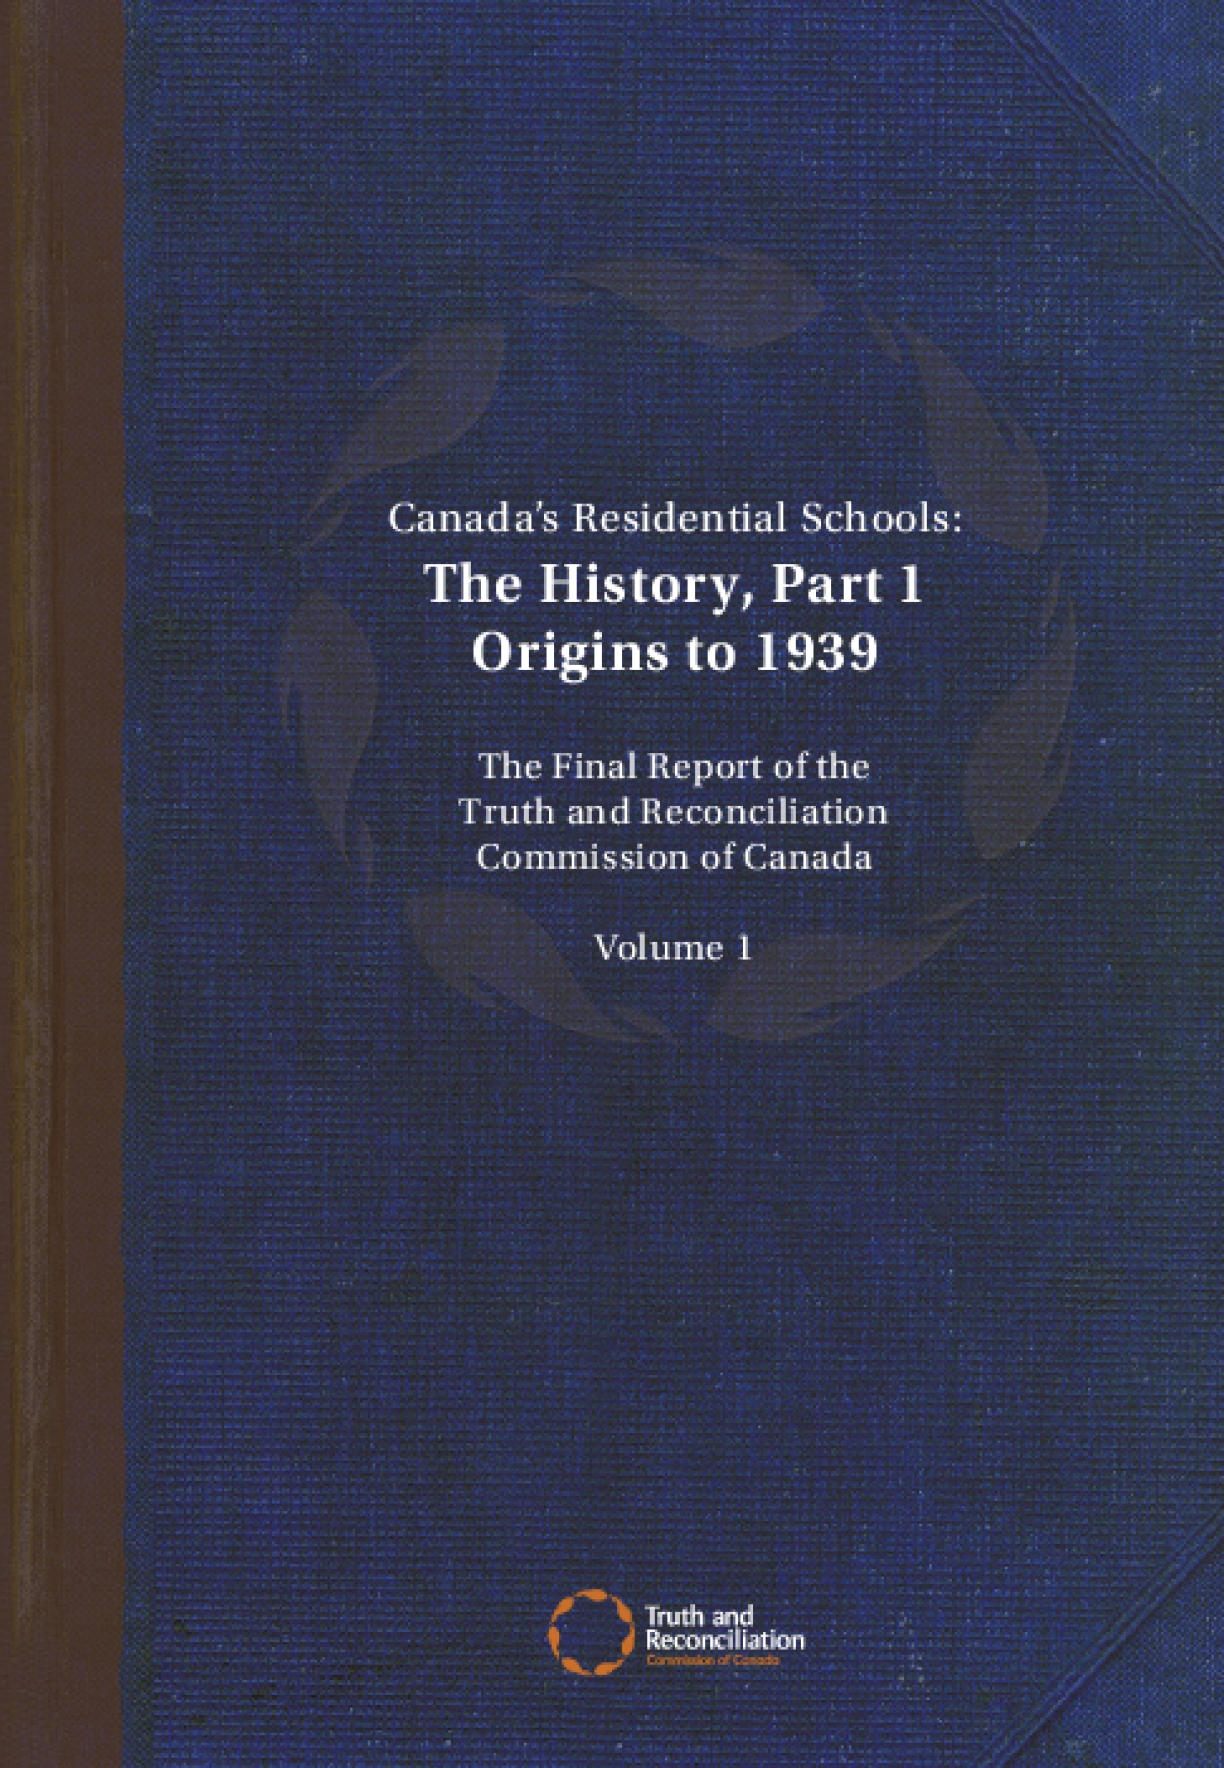 Canada's Residential Schools: The History, Part 1 Origins to 1939